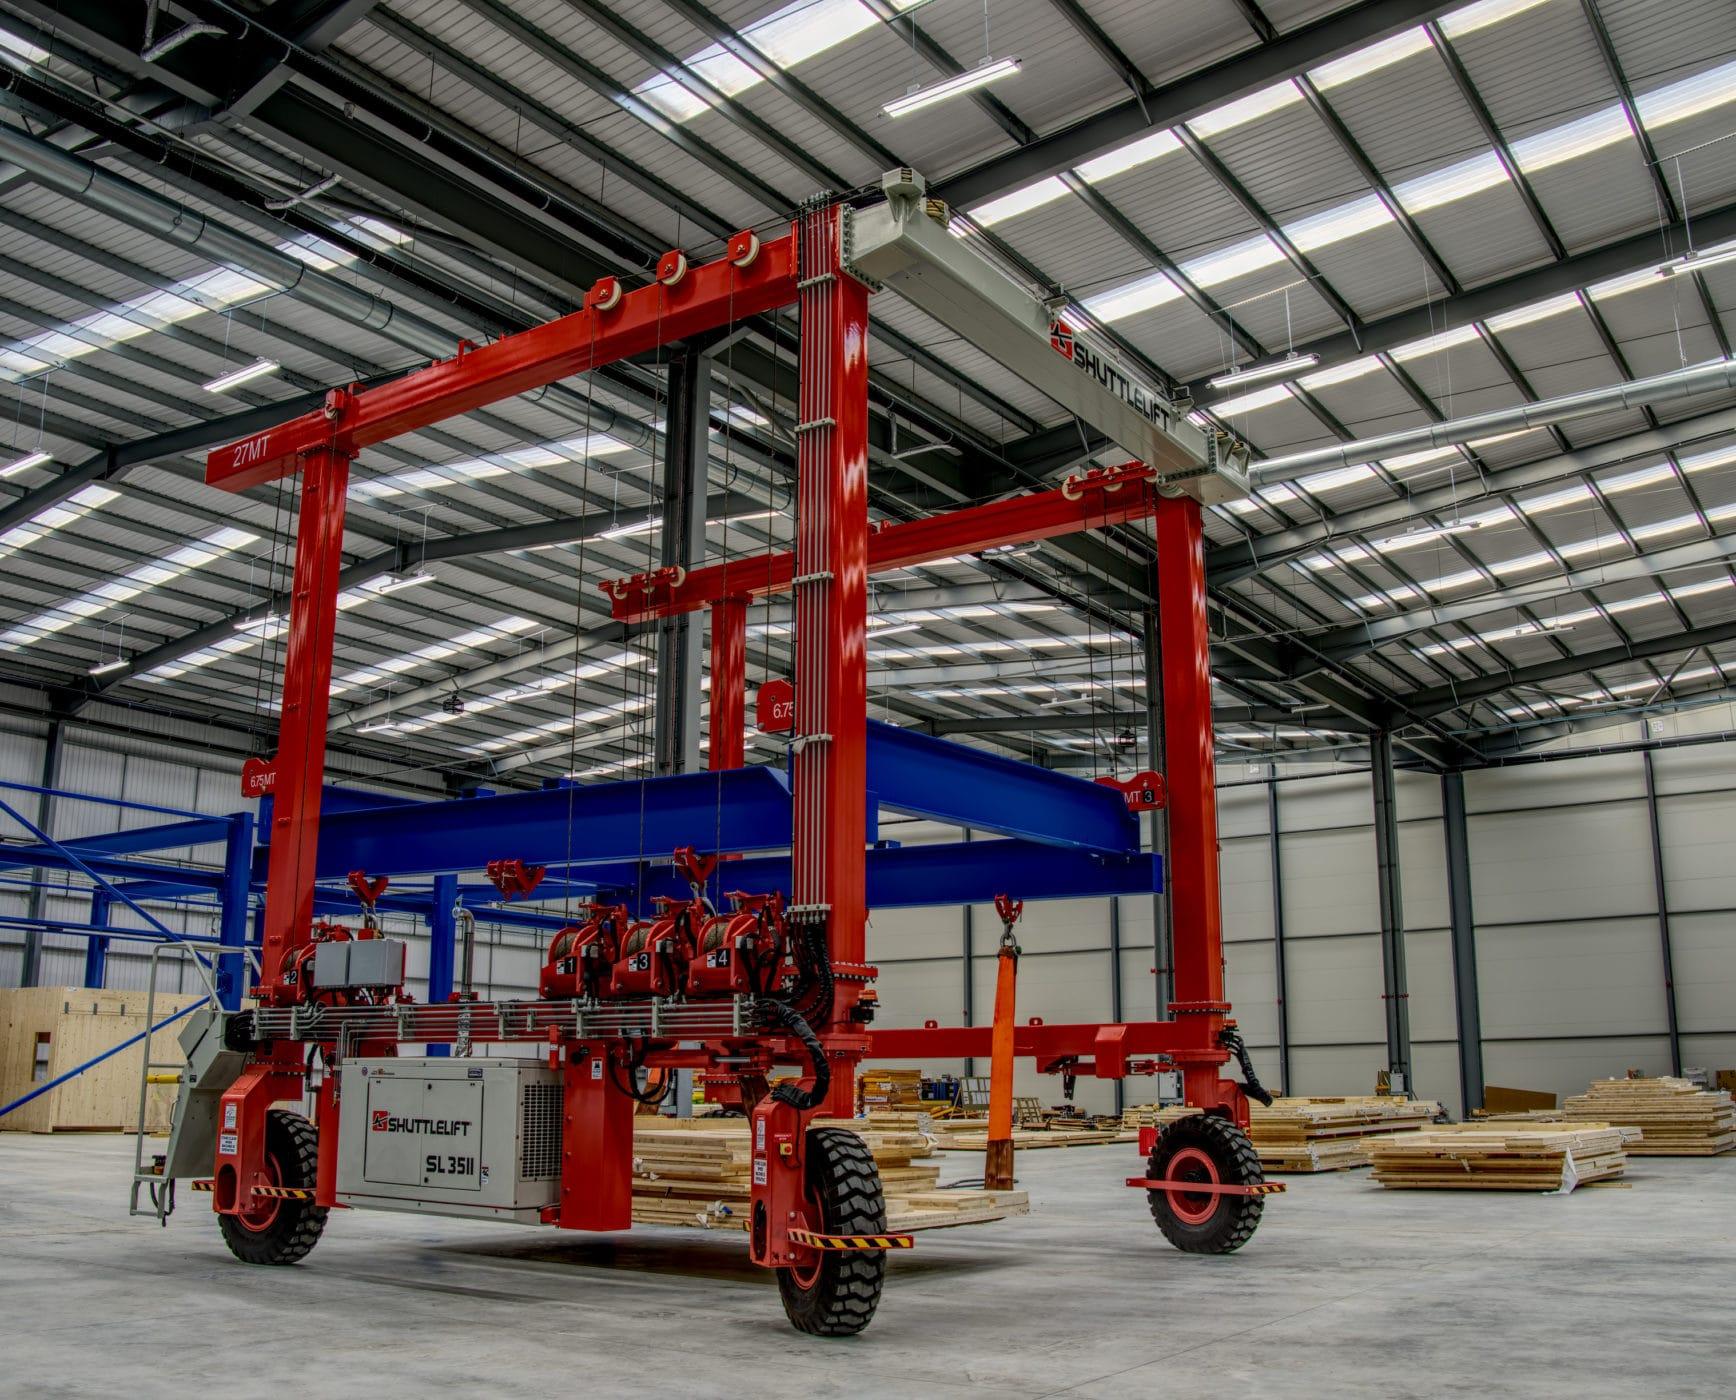 Shuttlelift SL35 gantry crane container handling application in the UK